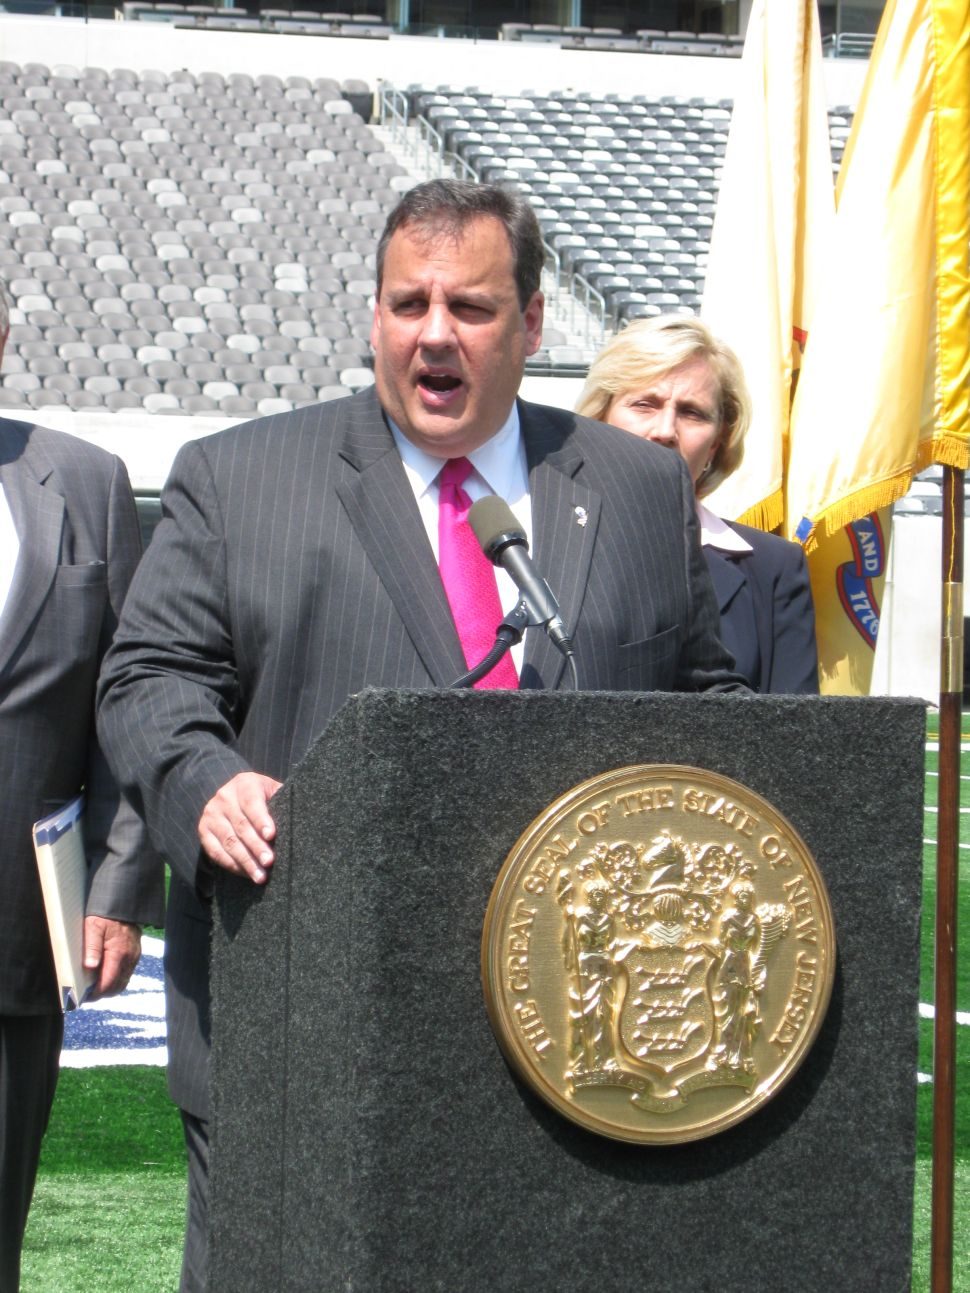 Christie up with first TV ad tomorrow